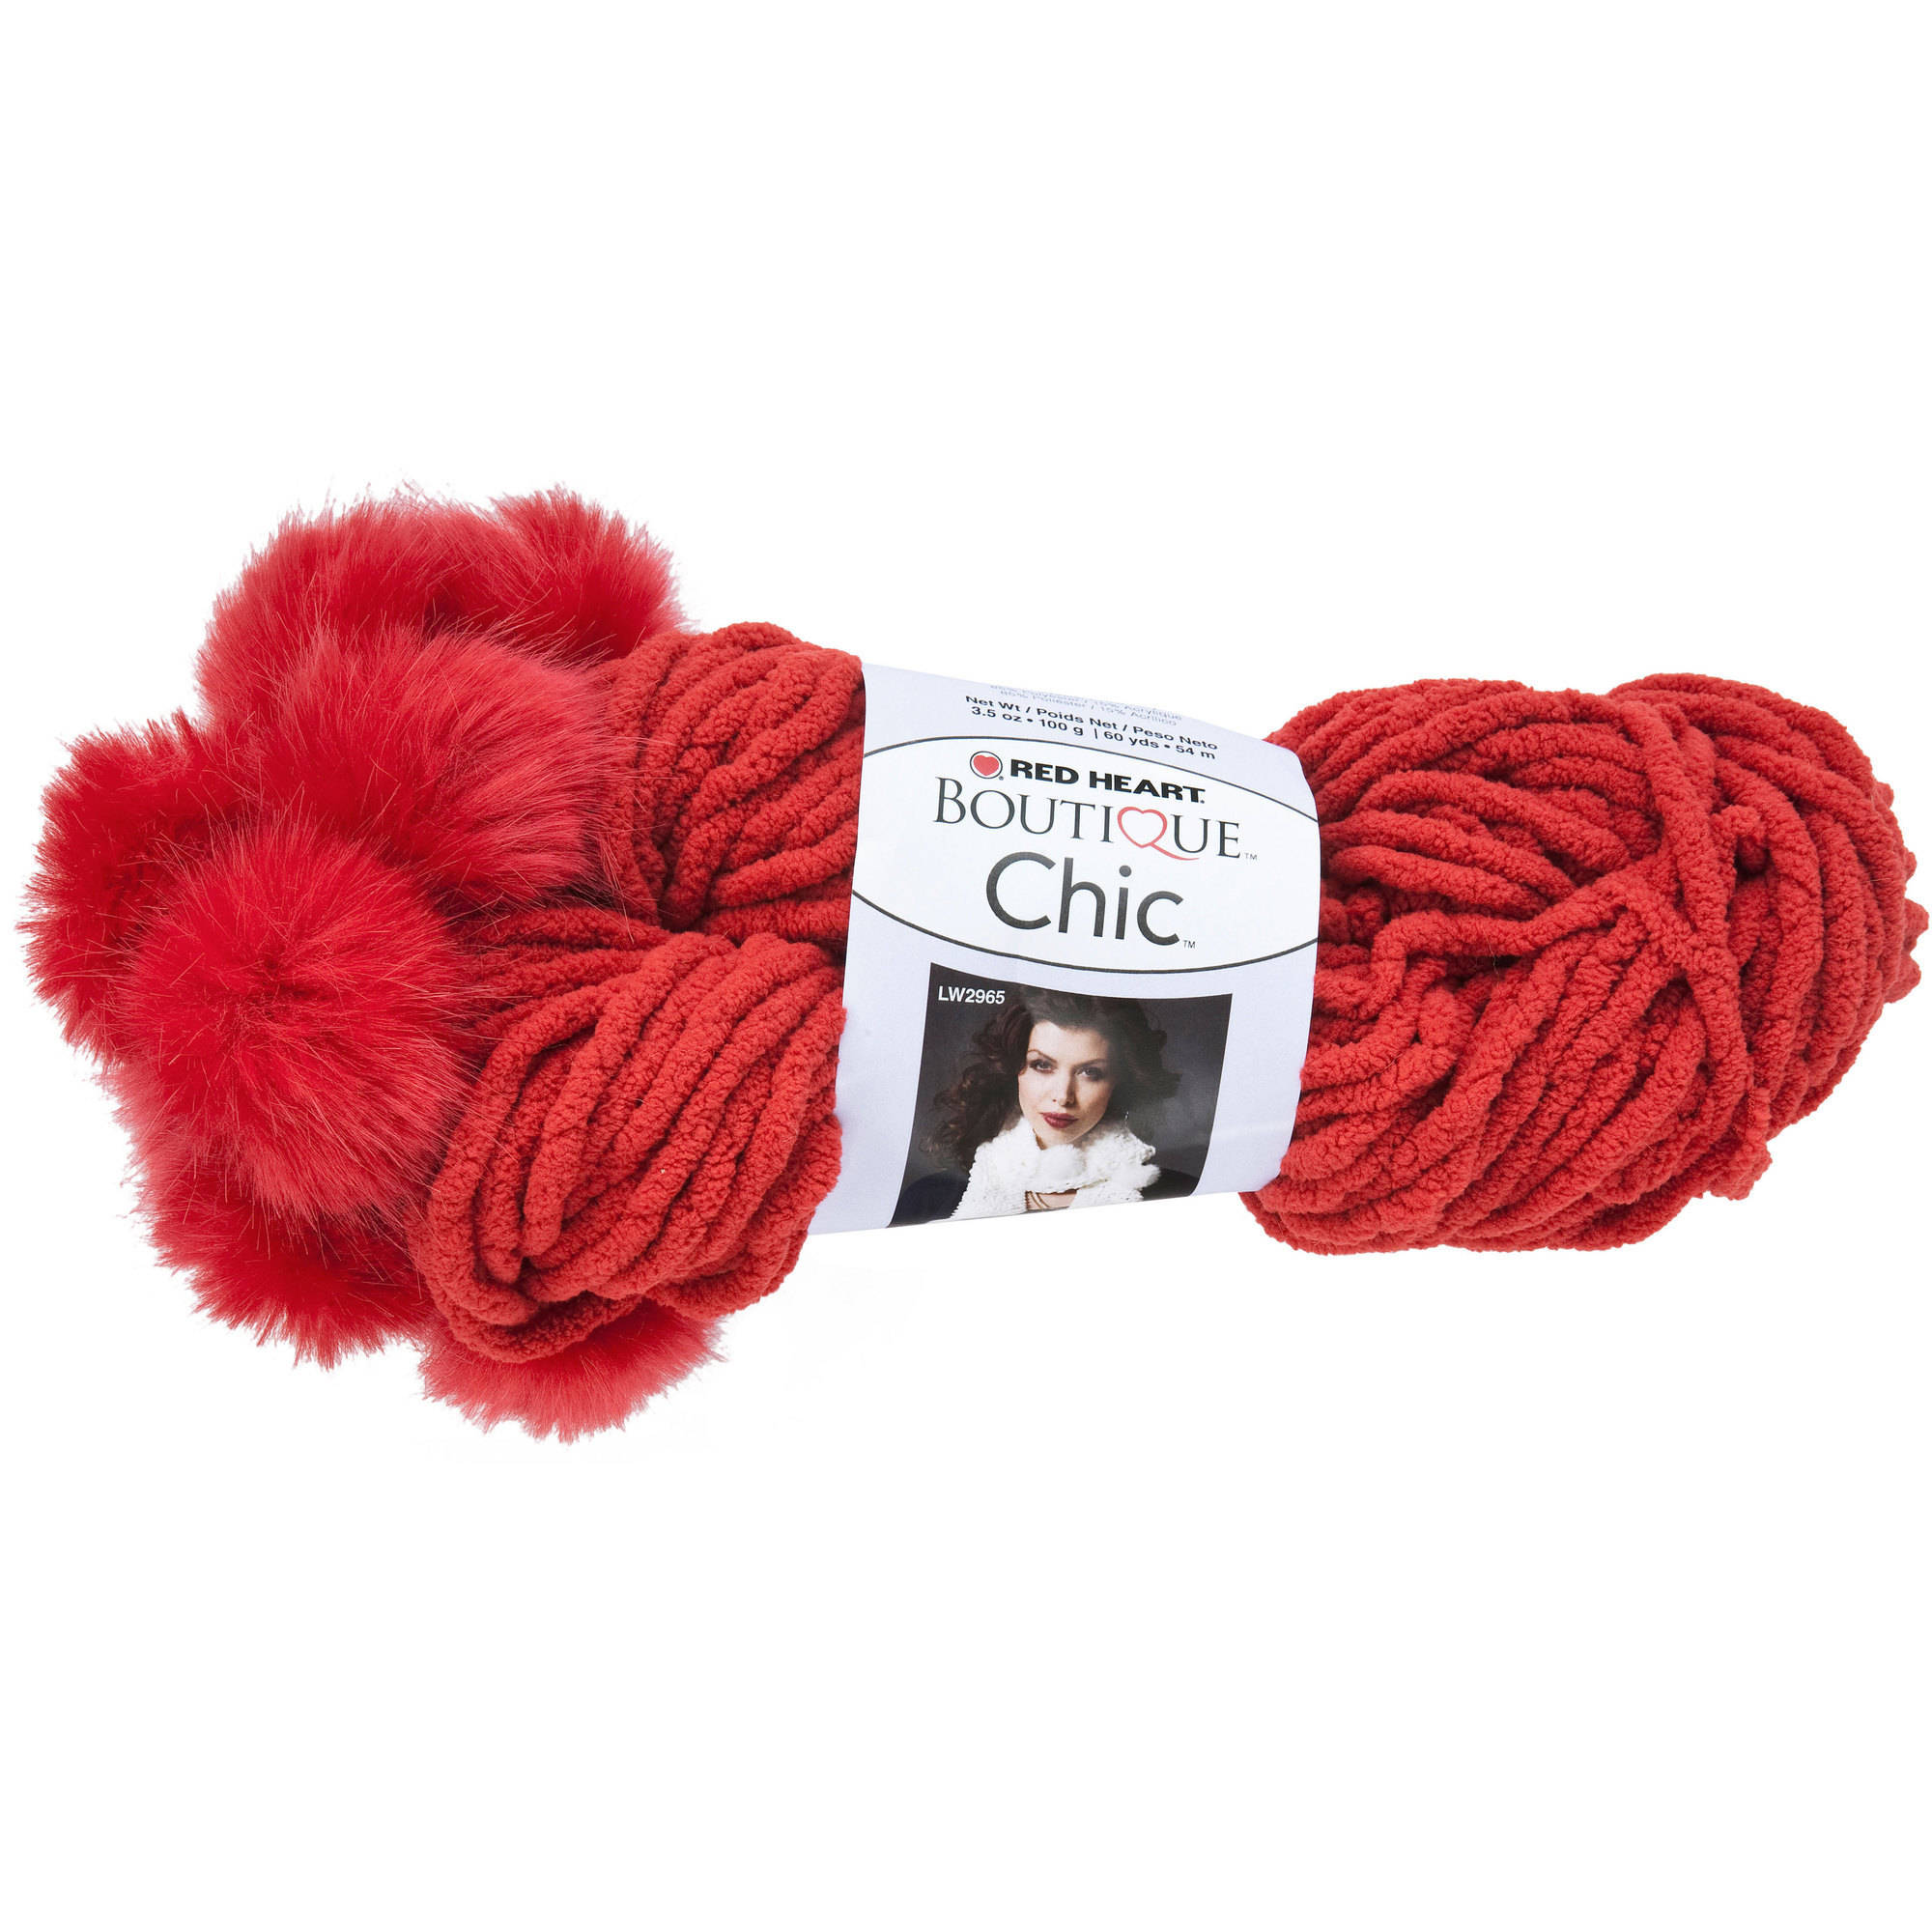 Red Heart Boutique Chic Yarn, Available in Multiple Colors